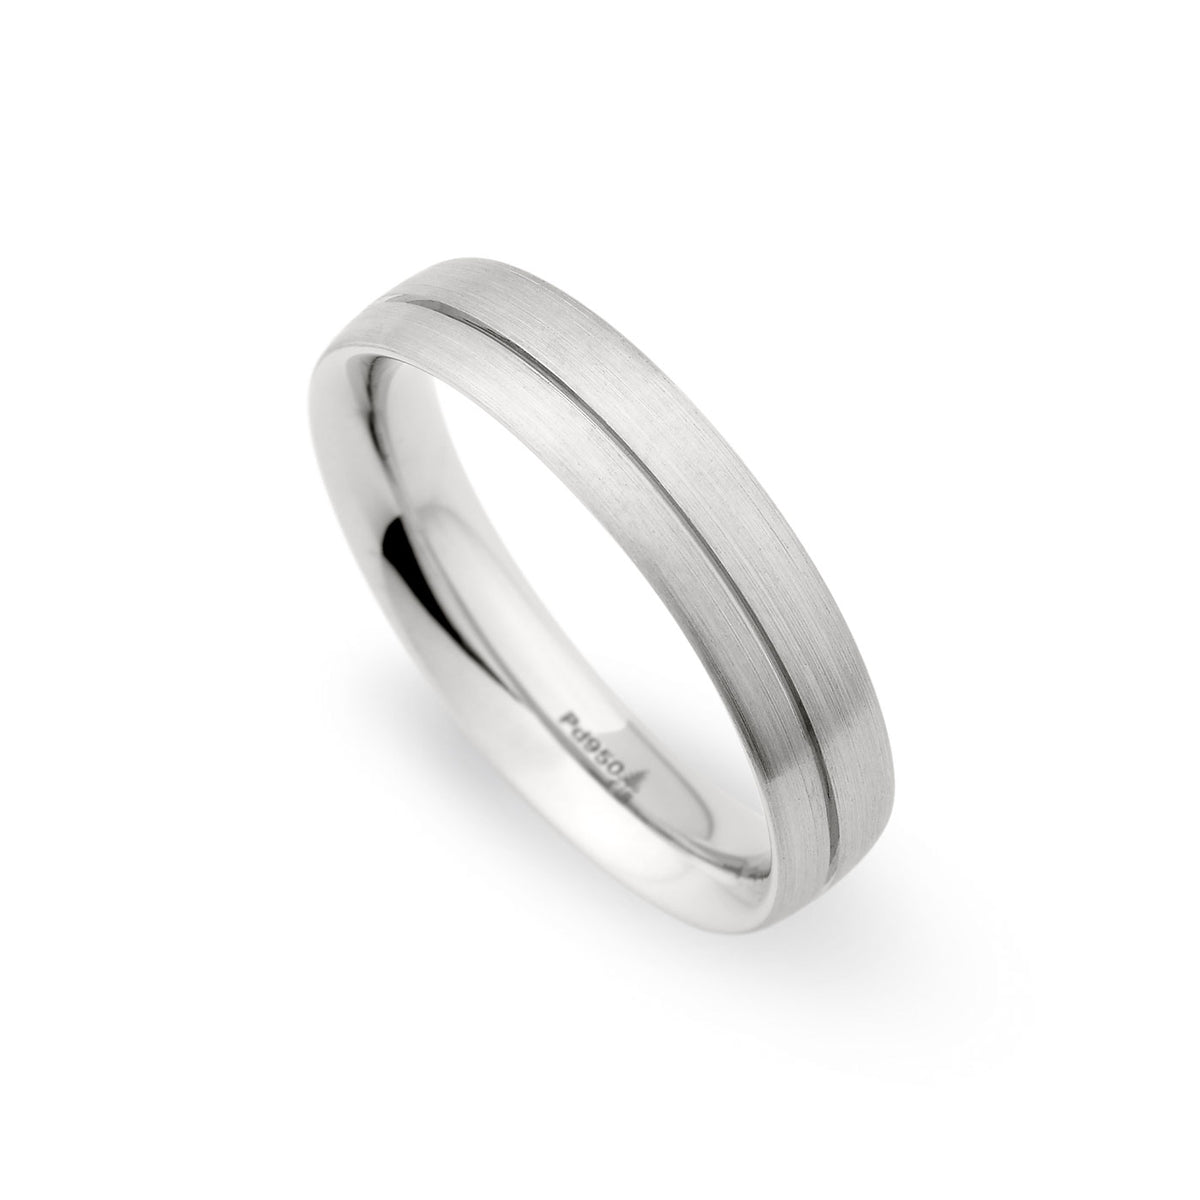 Palladium 5mm Off-Center Grooved Brushed Band